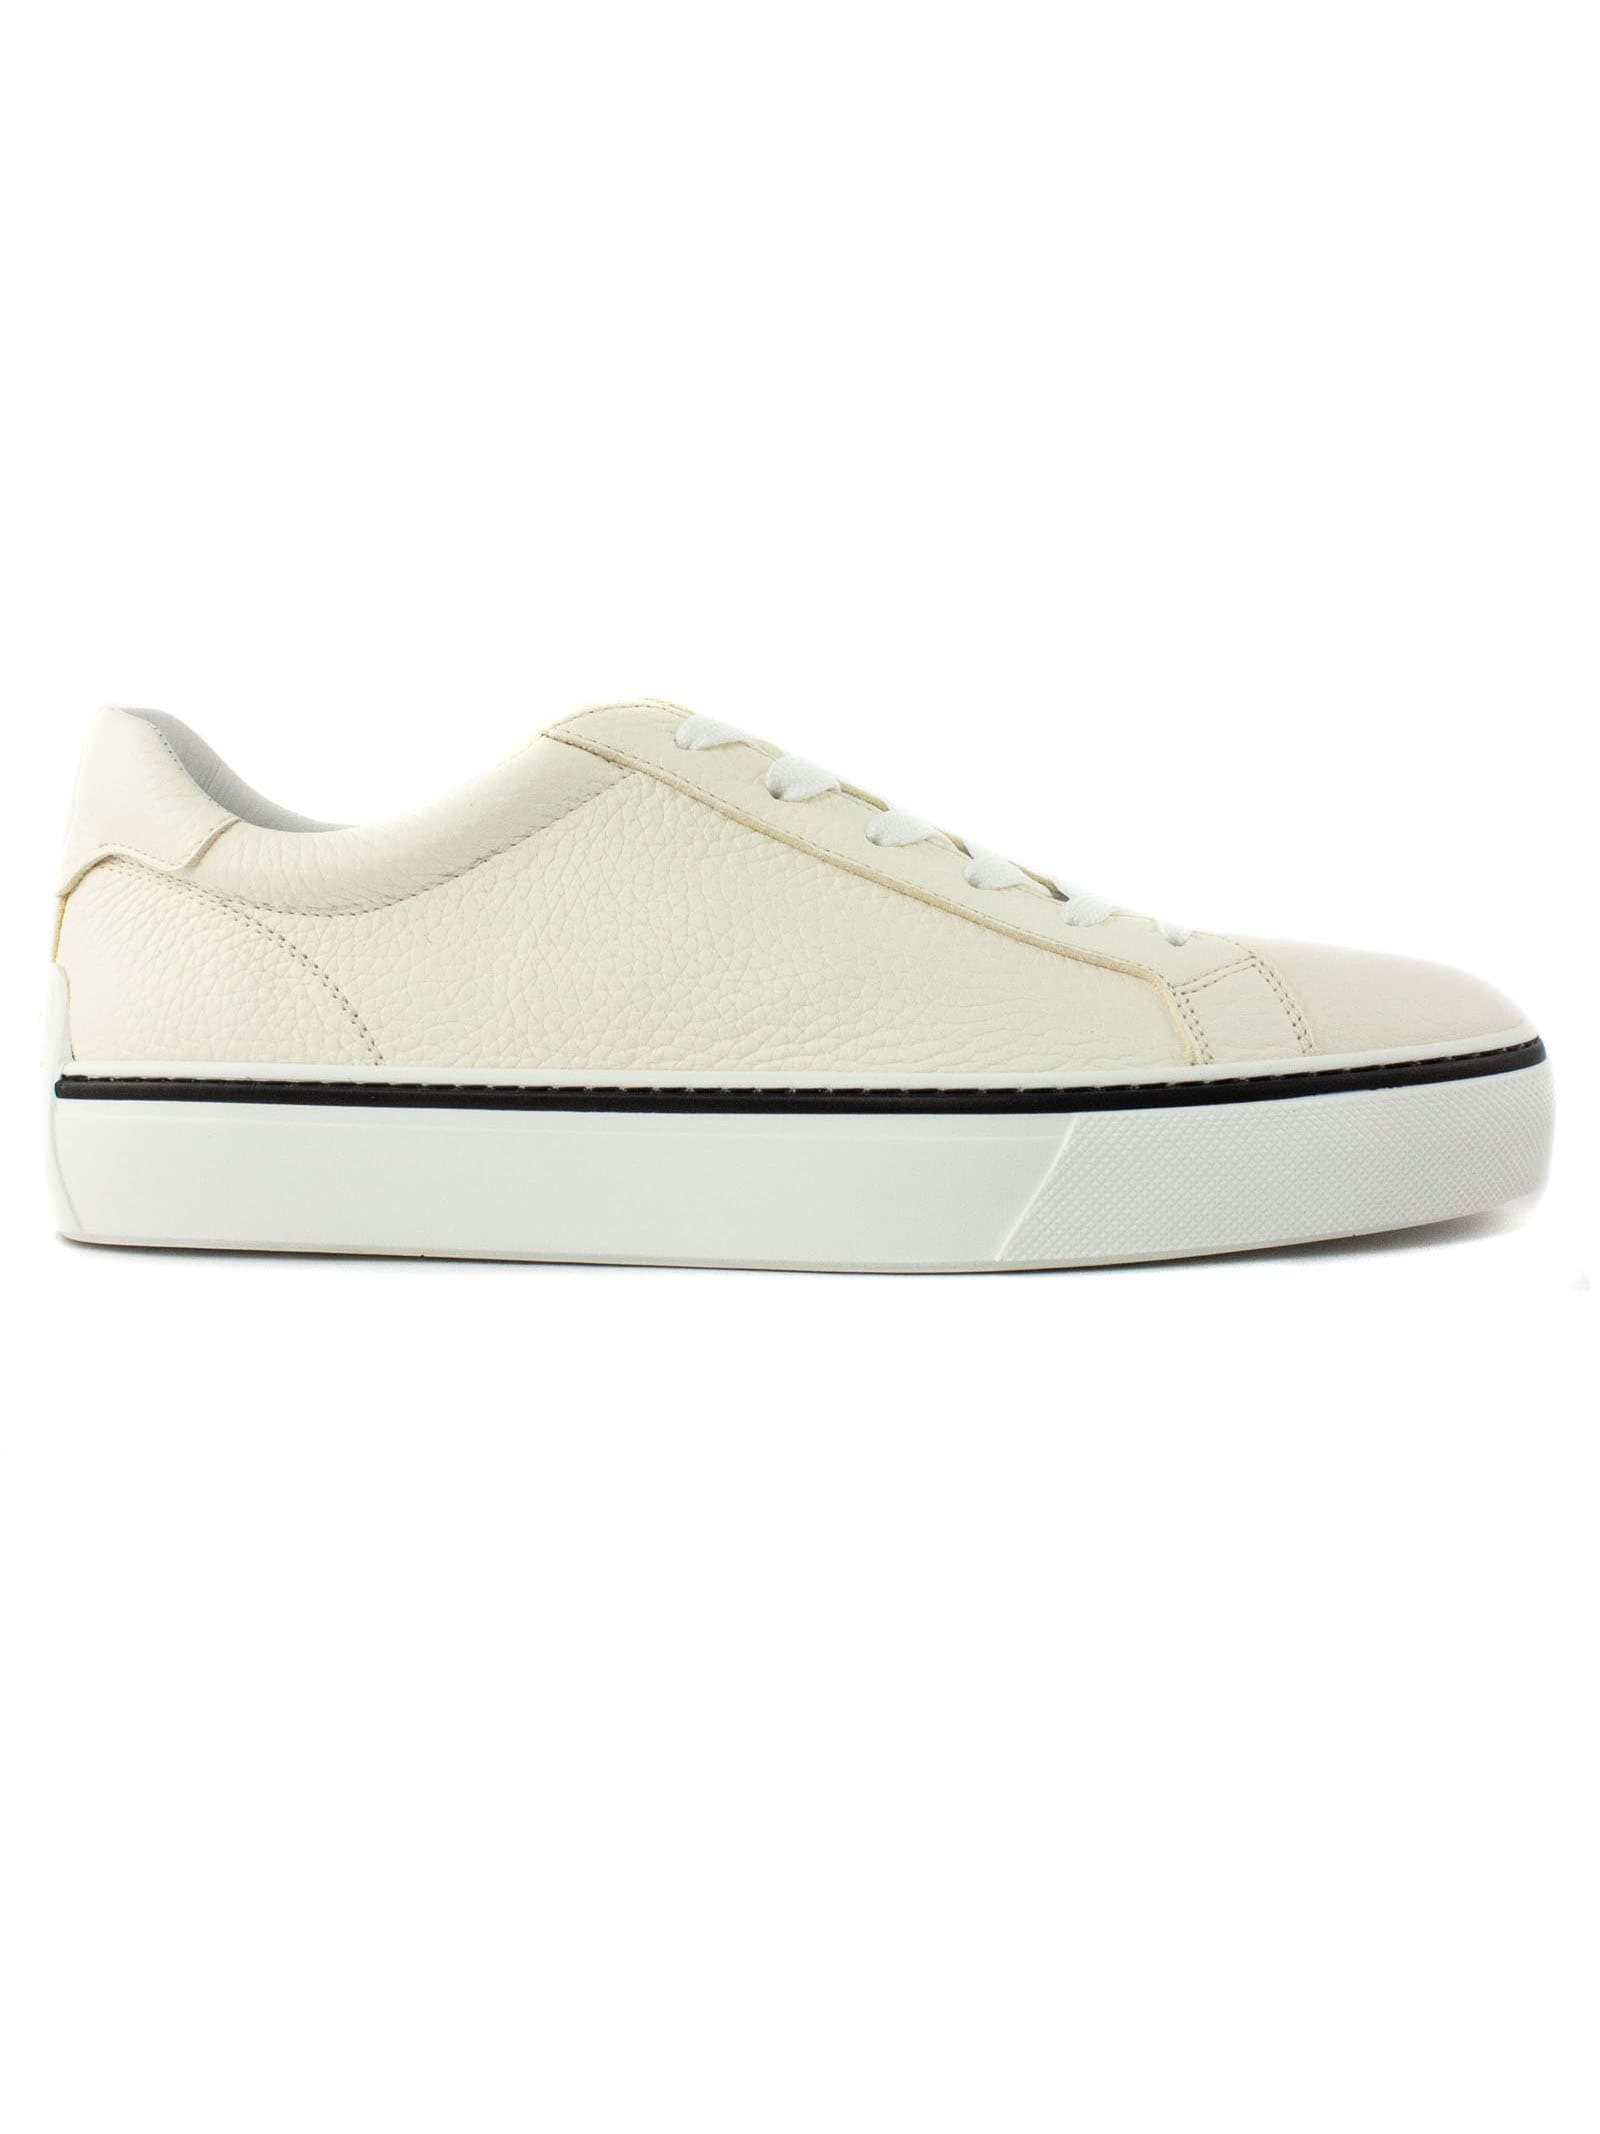 Tod's GRAINY LEATHER CLASSIC SNEAKERS